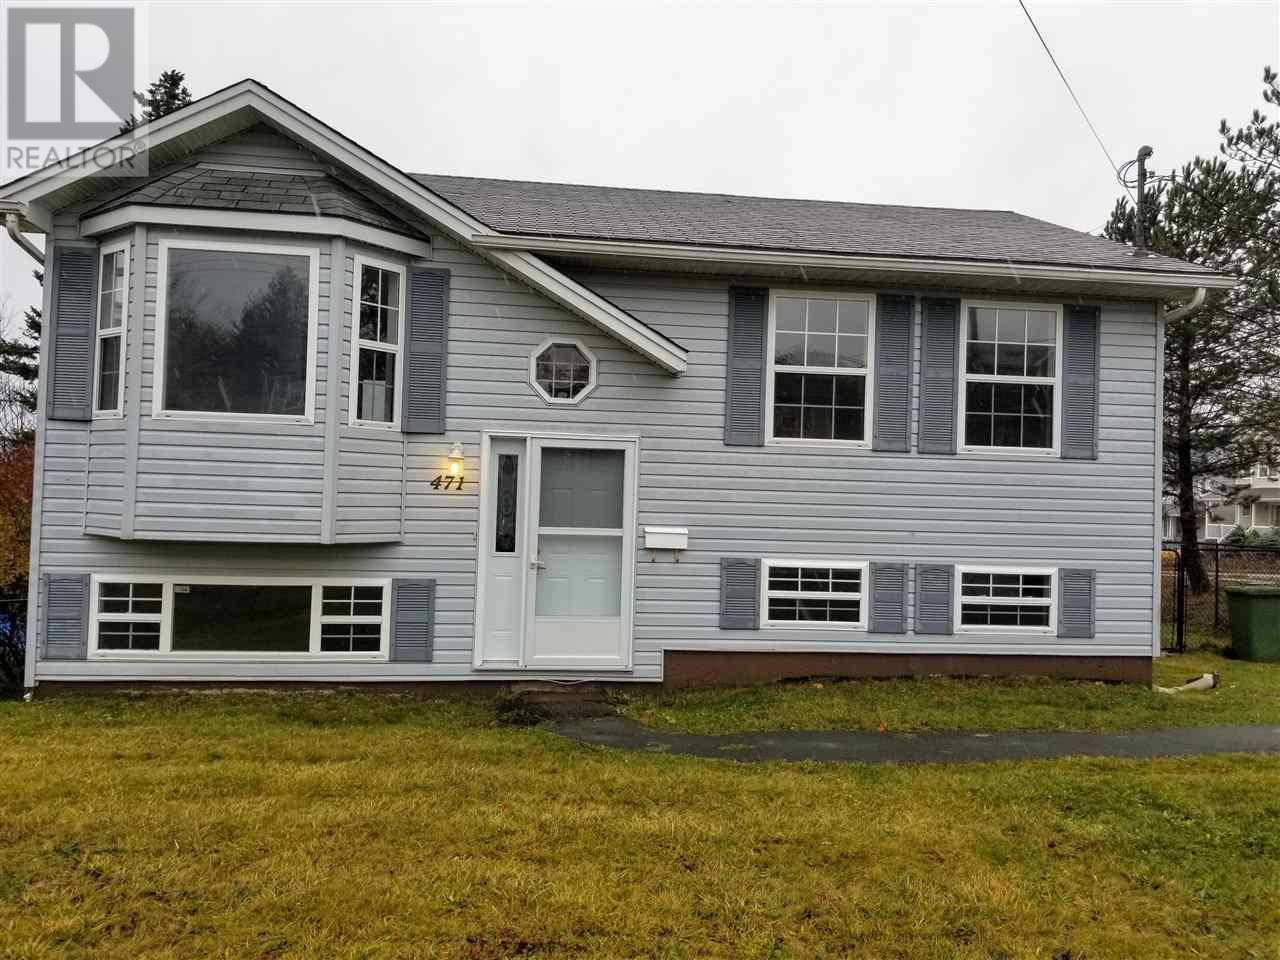 House for sale at 471 Caldwell Rd Cole Harbour Nova Scotia - MLS: 201925906